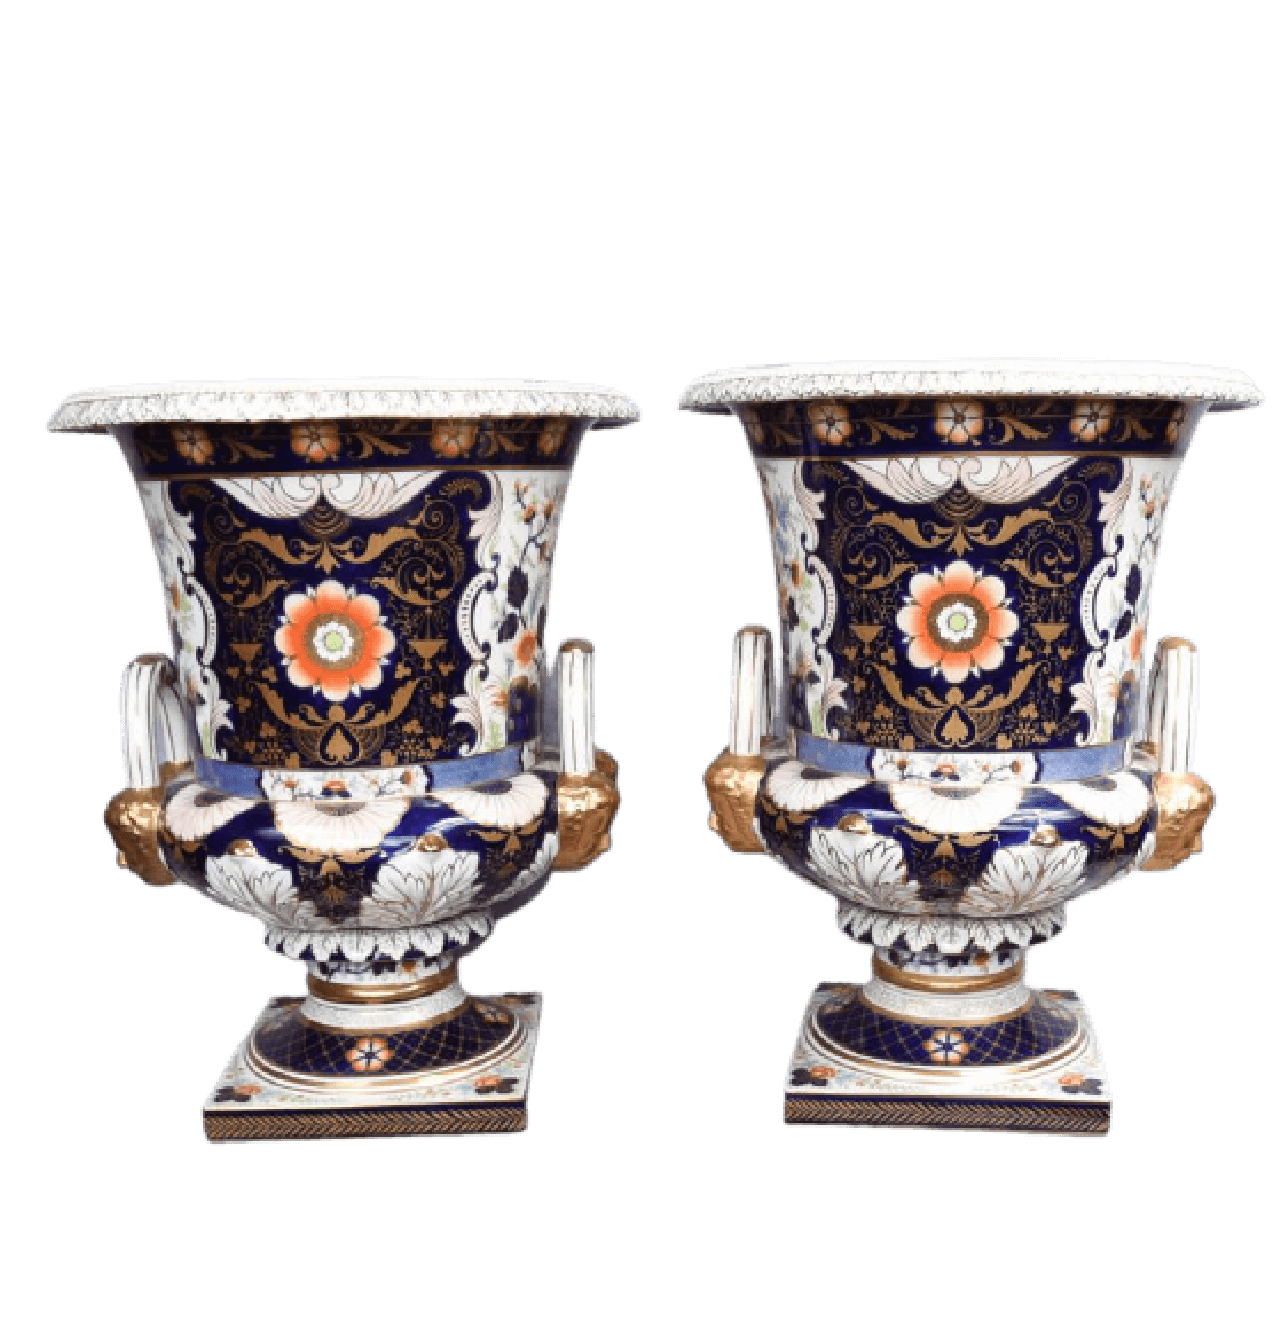 A Pair of Royal Derby Style Porcelain Urns